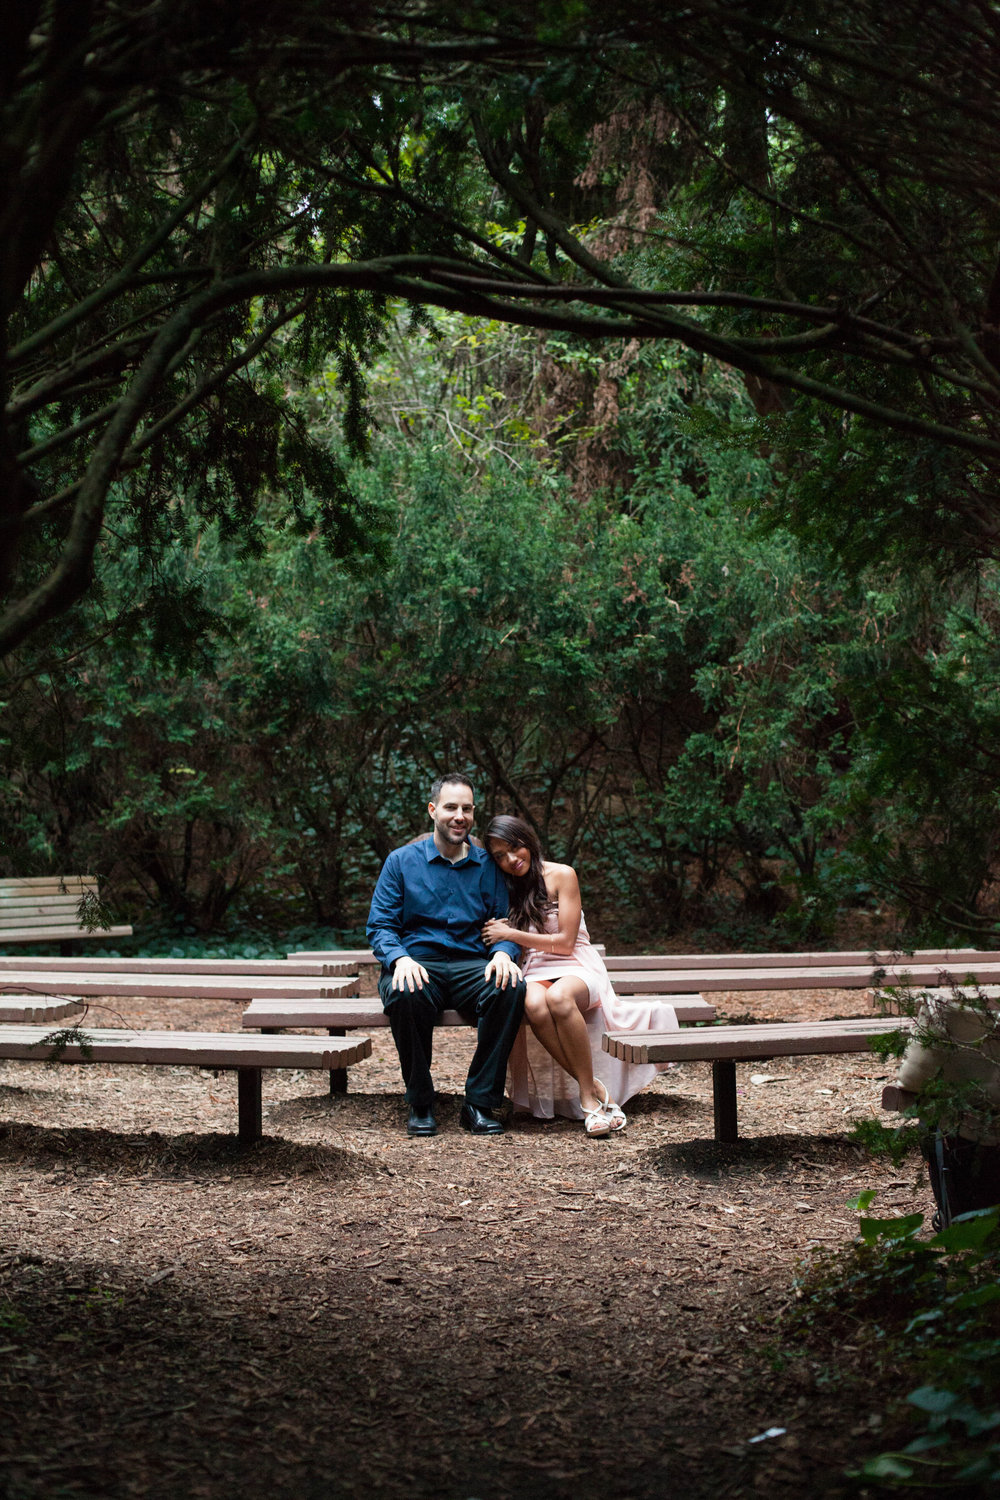 Meo Baaklini-San Francisco Engagement Photographer-Botanical Gardens14.jpg